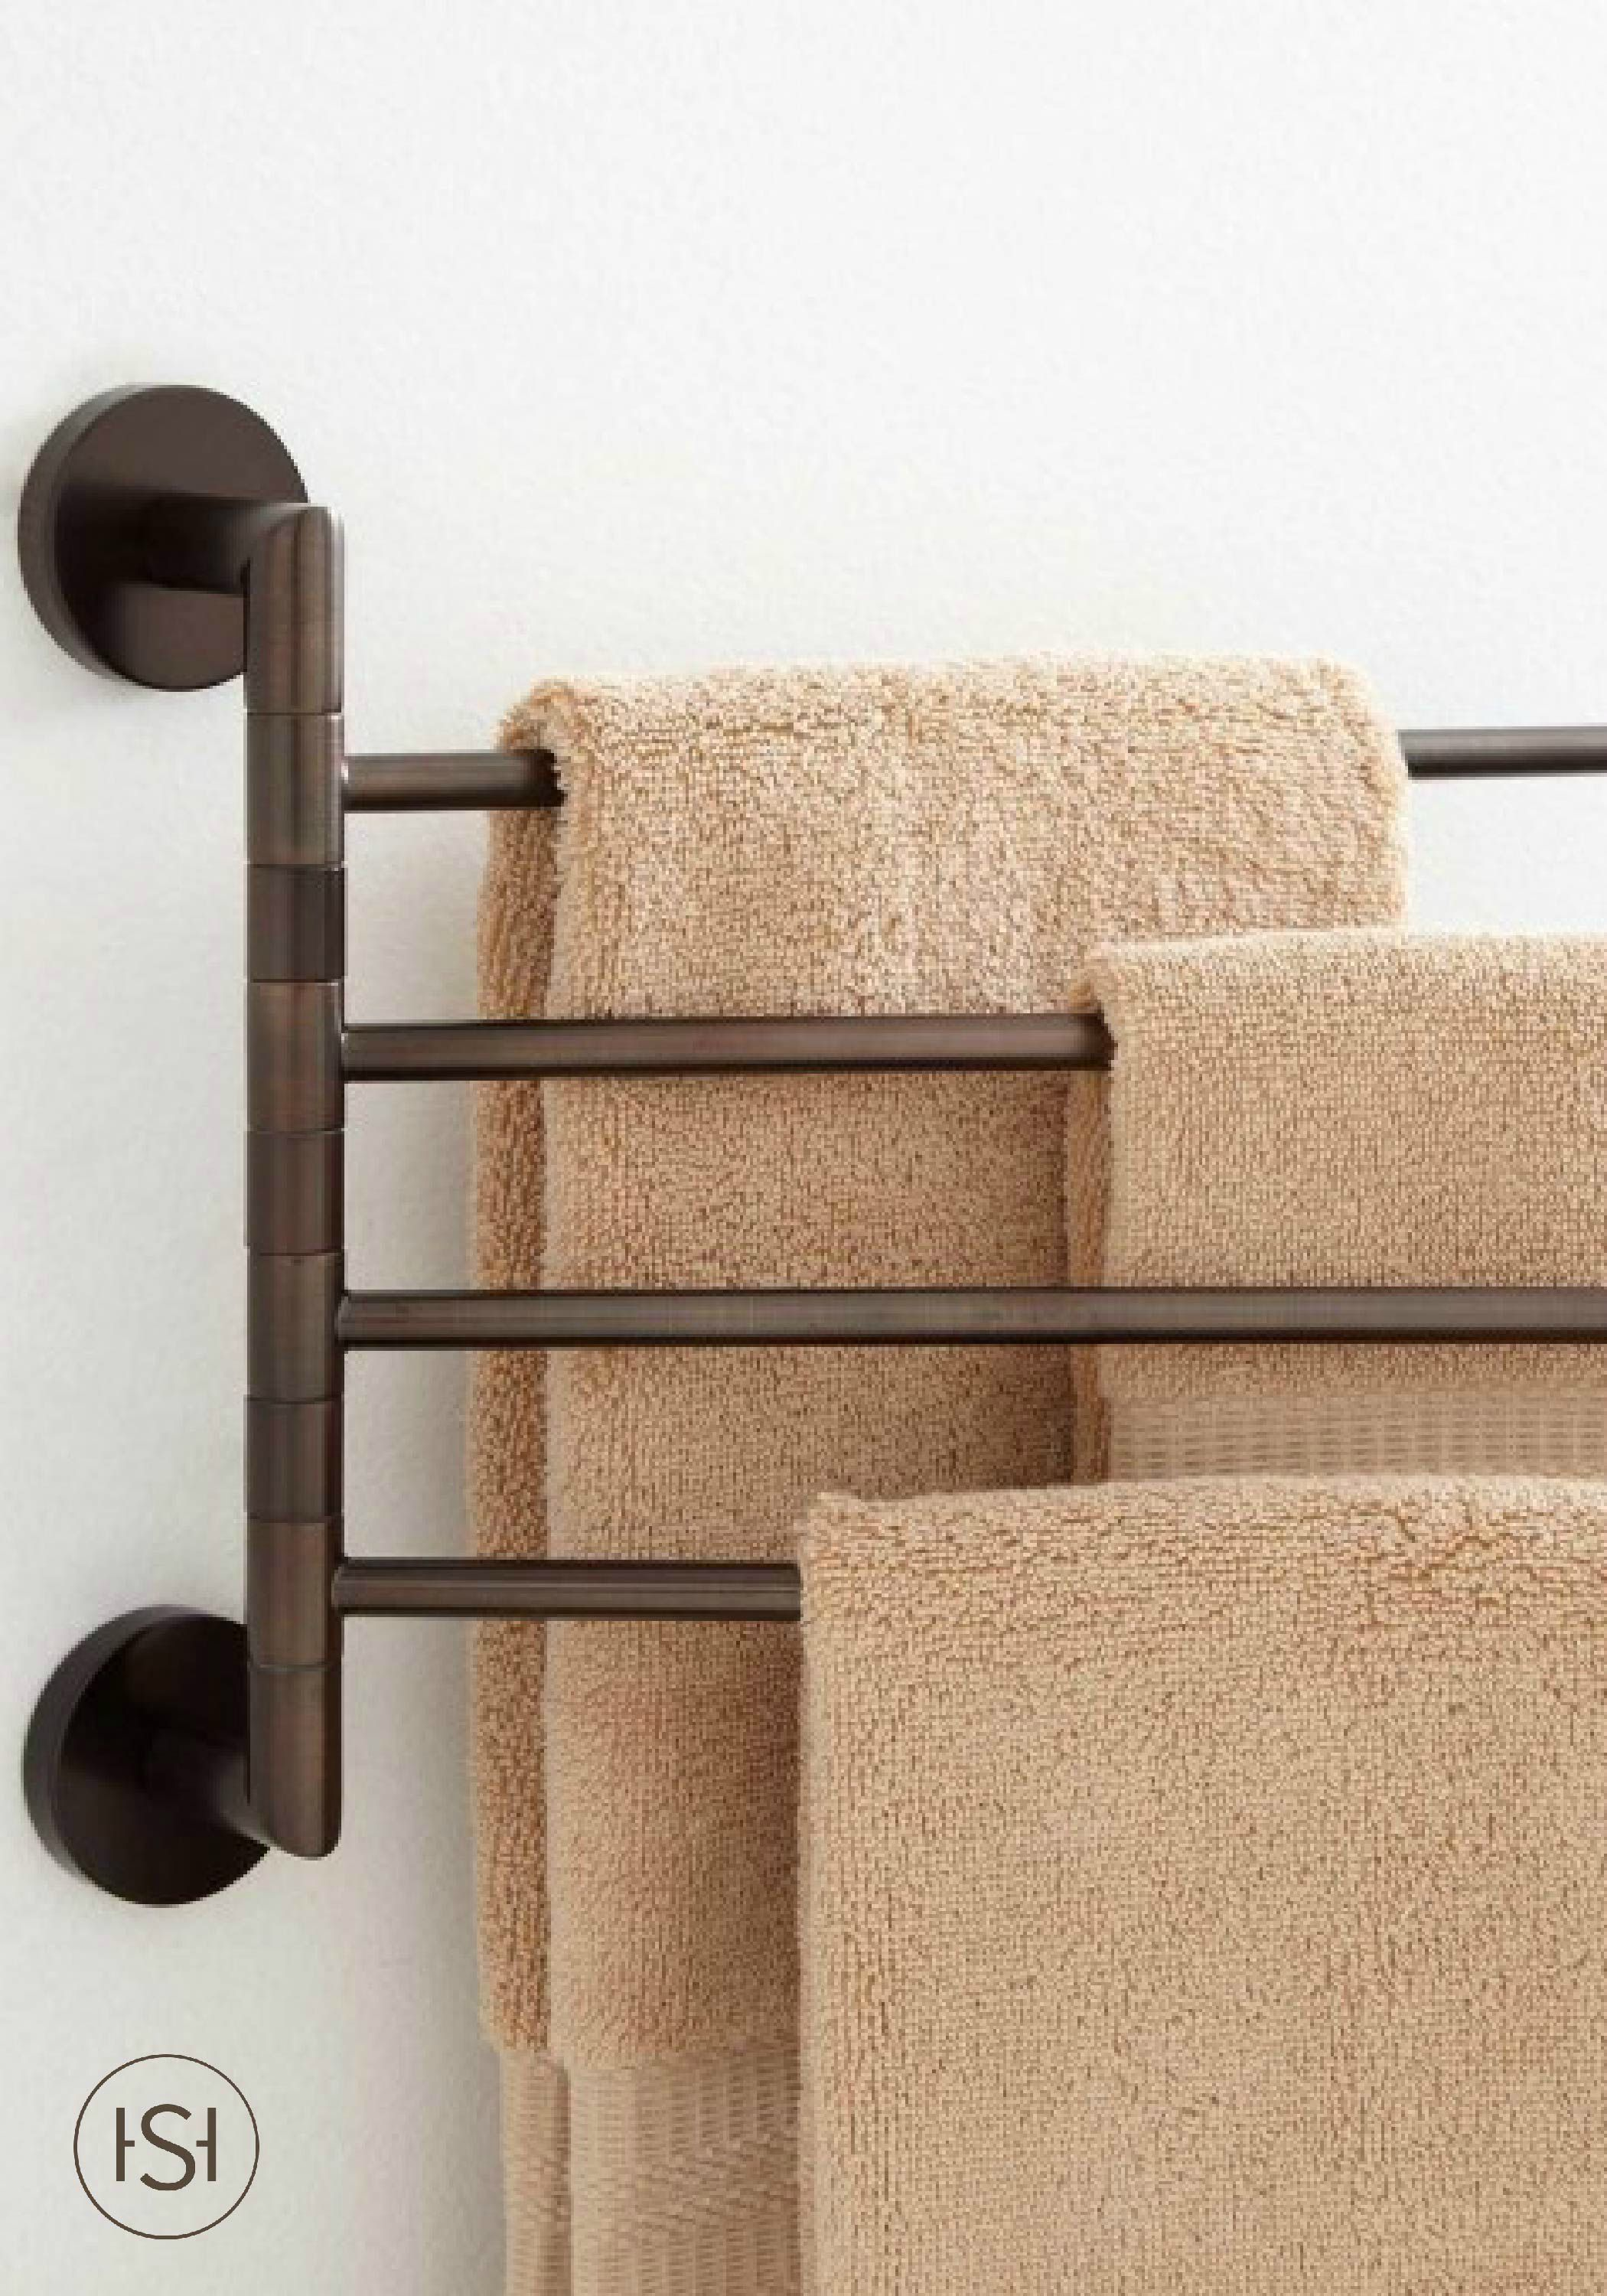 Swinging towel bar, cheating what does a womens smell of sex